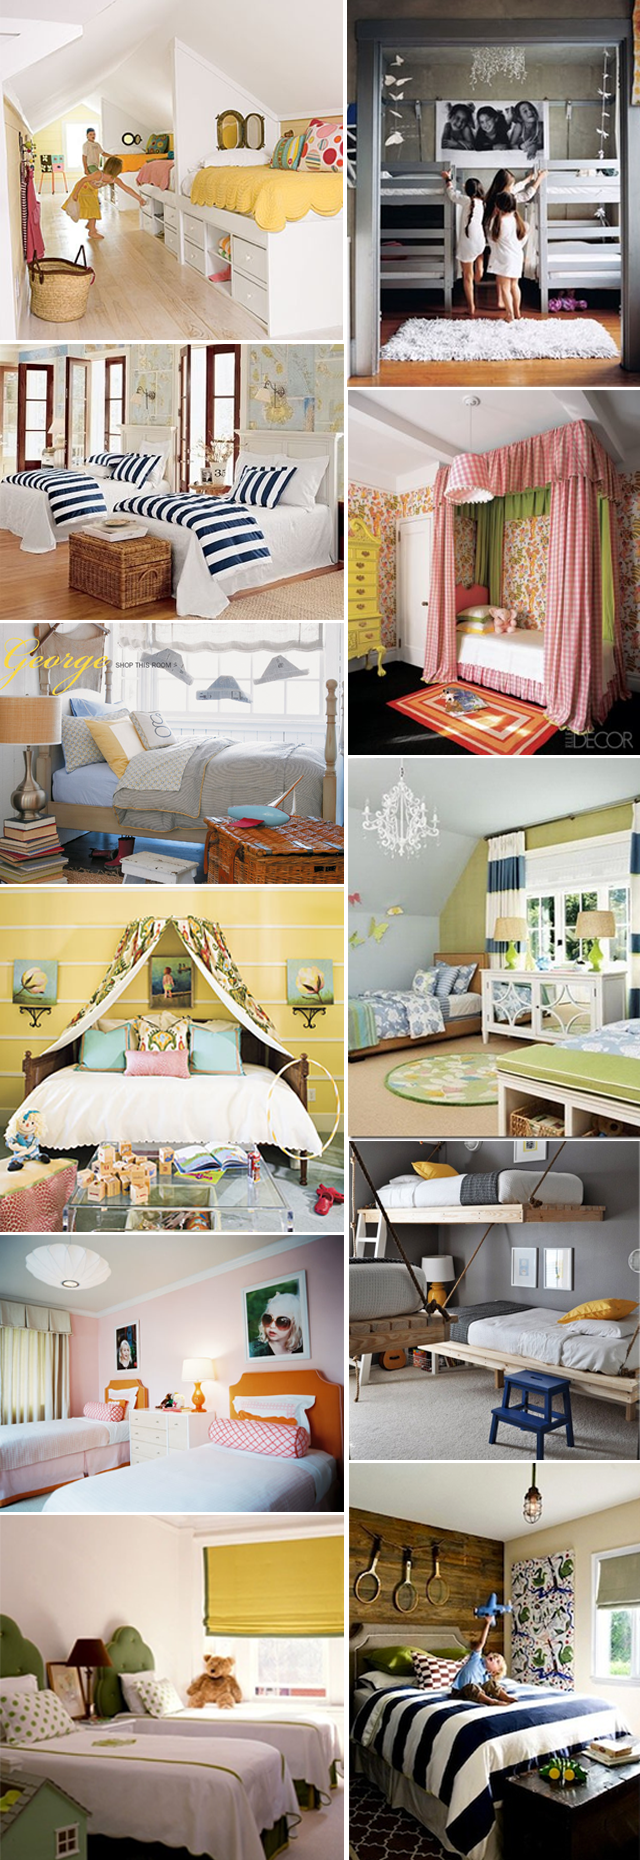 KIDS - Room Inspiration! - Merriment Style Blog - Merriment - A Celebration of Style and Substance